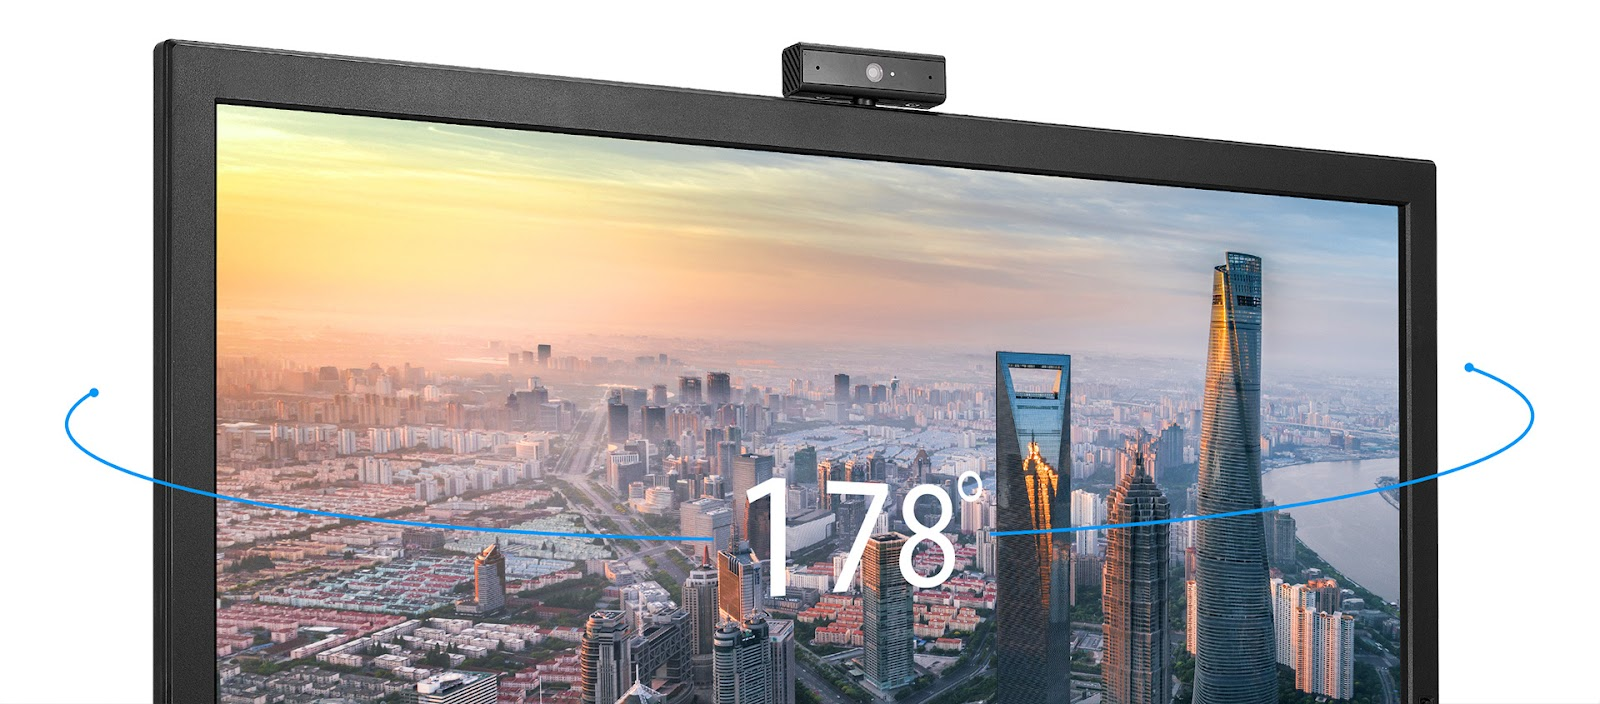 BE24DQLB offers Full HD resolution to deliver stunning clarity.